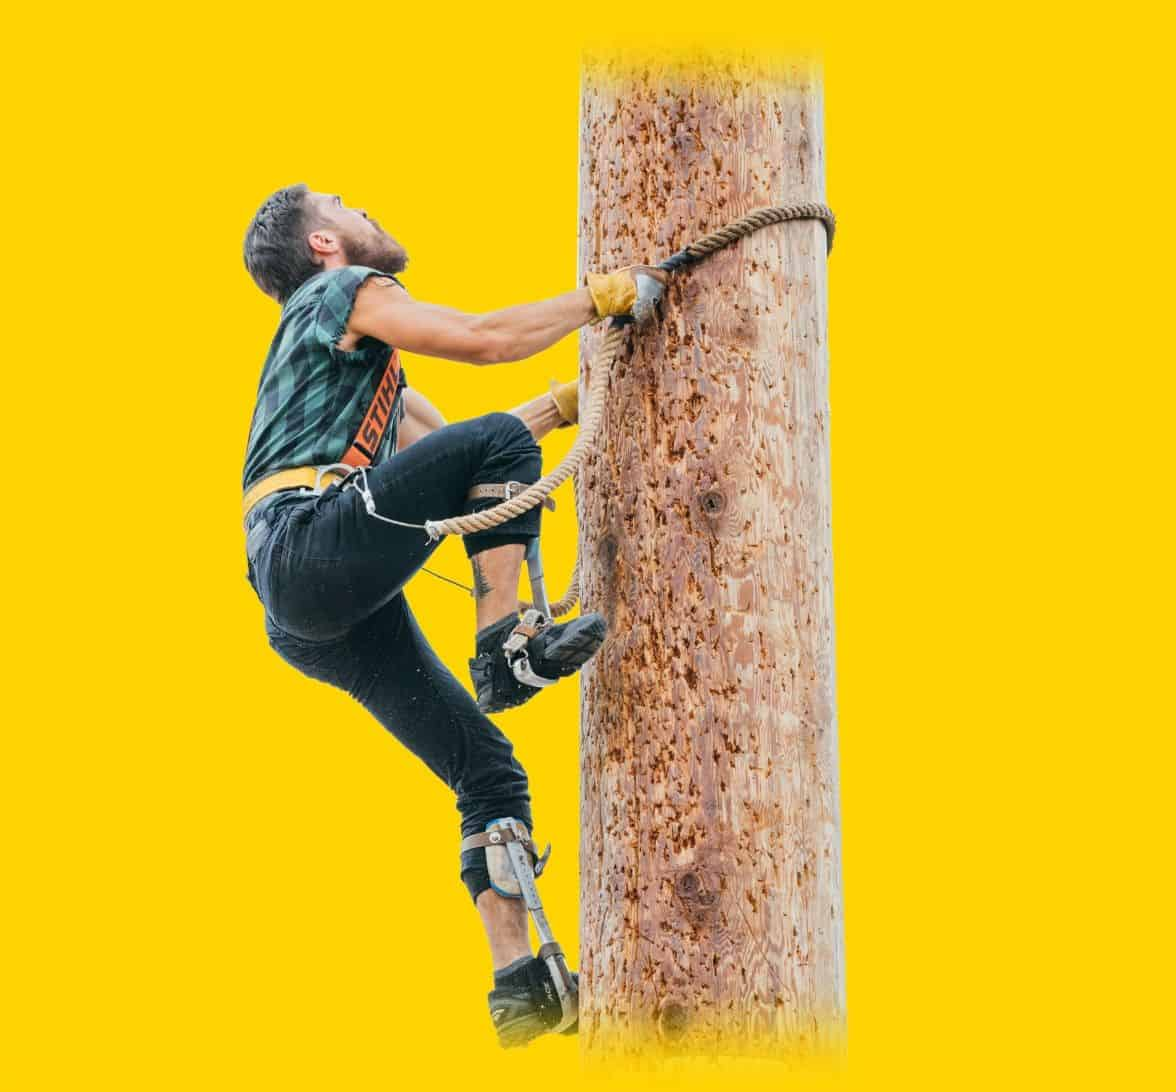 athlete climbing a pole in speed climb